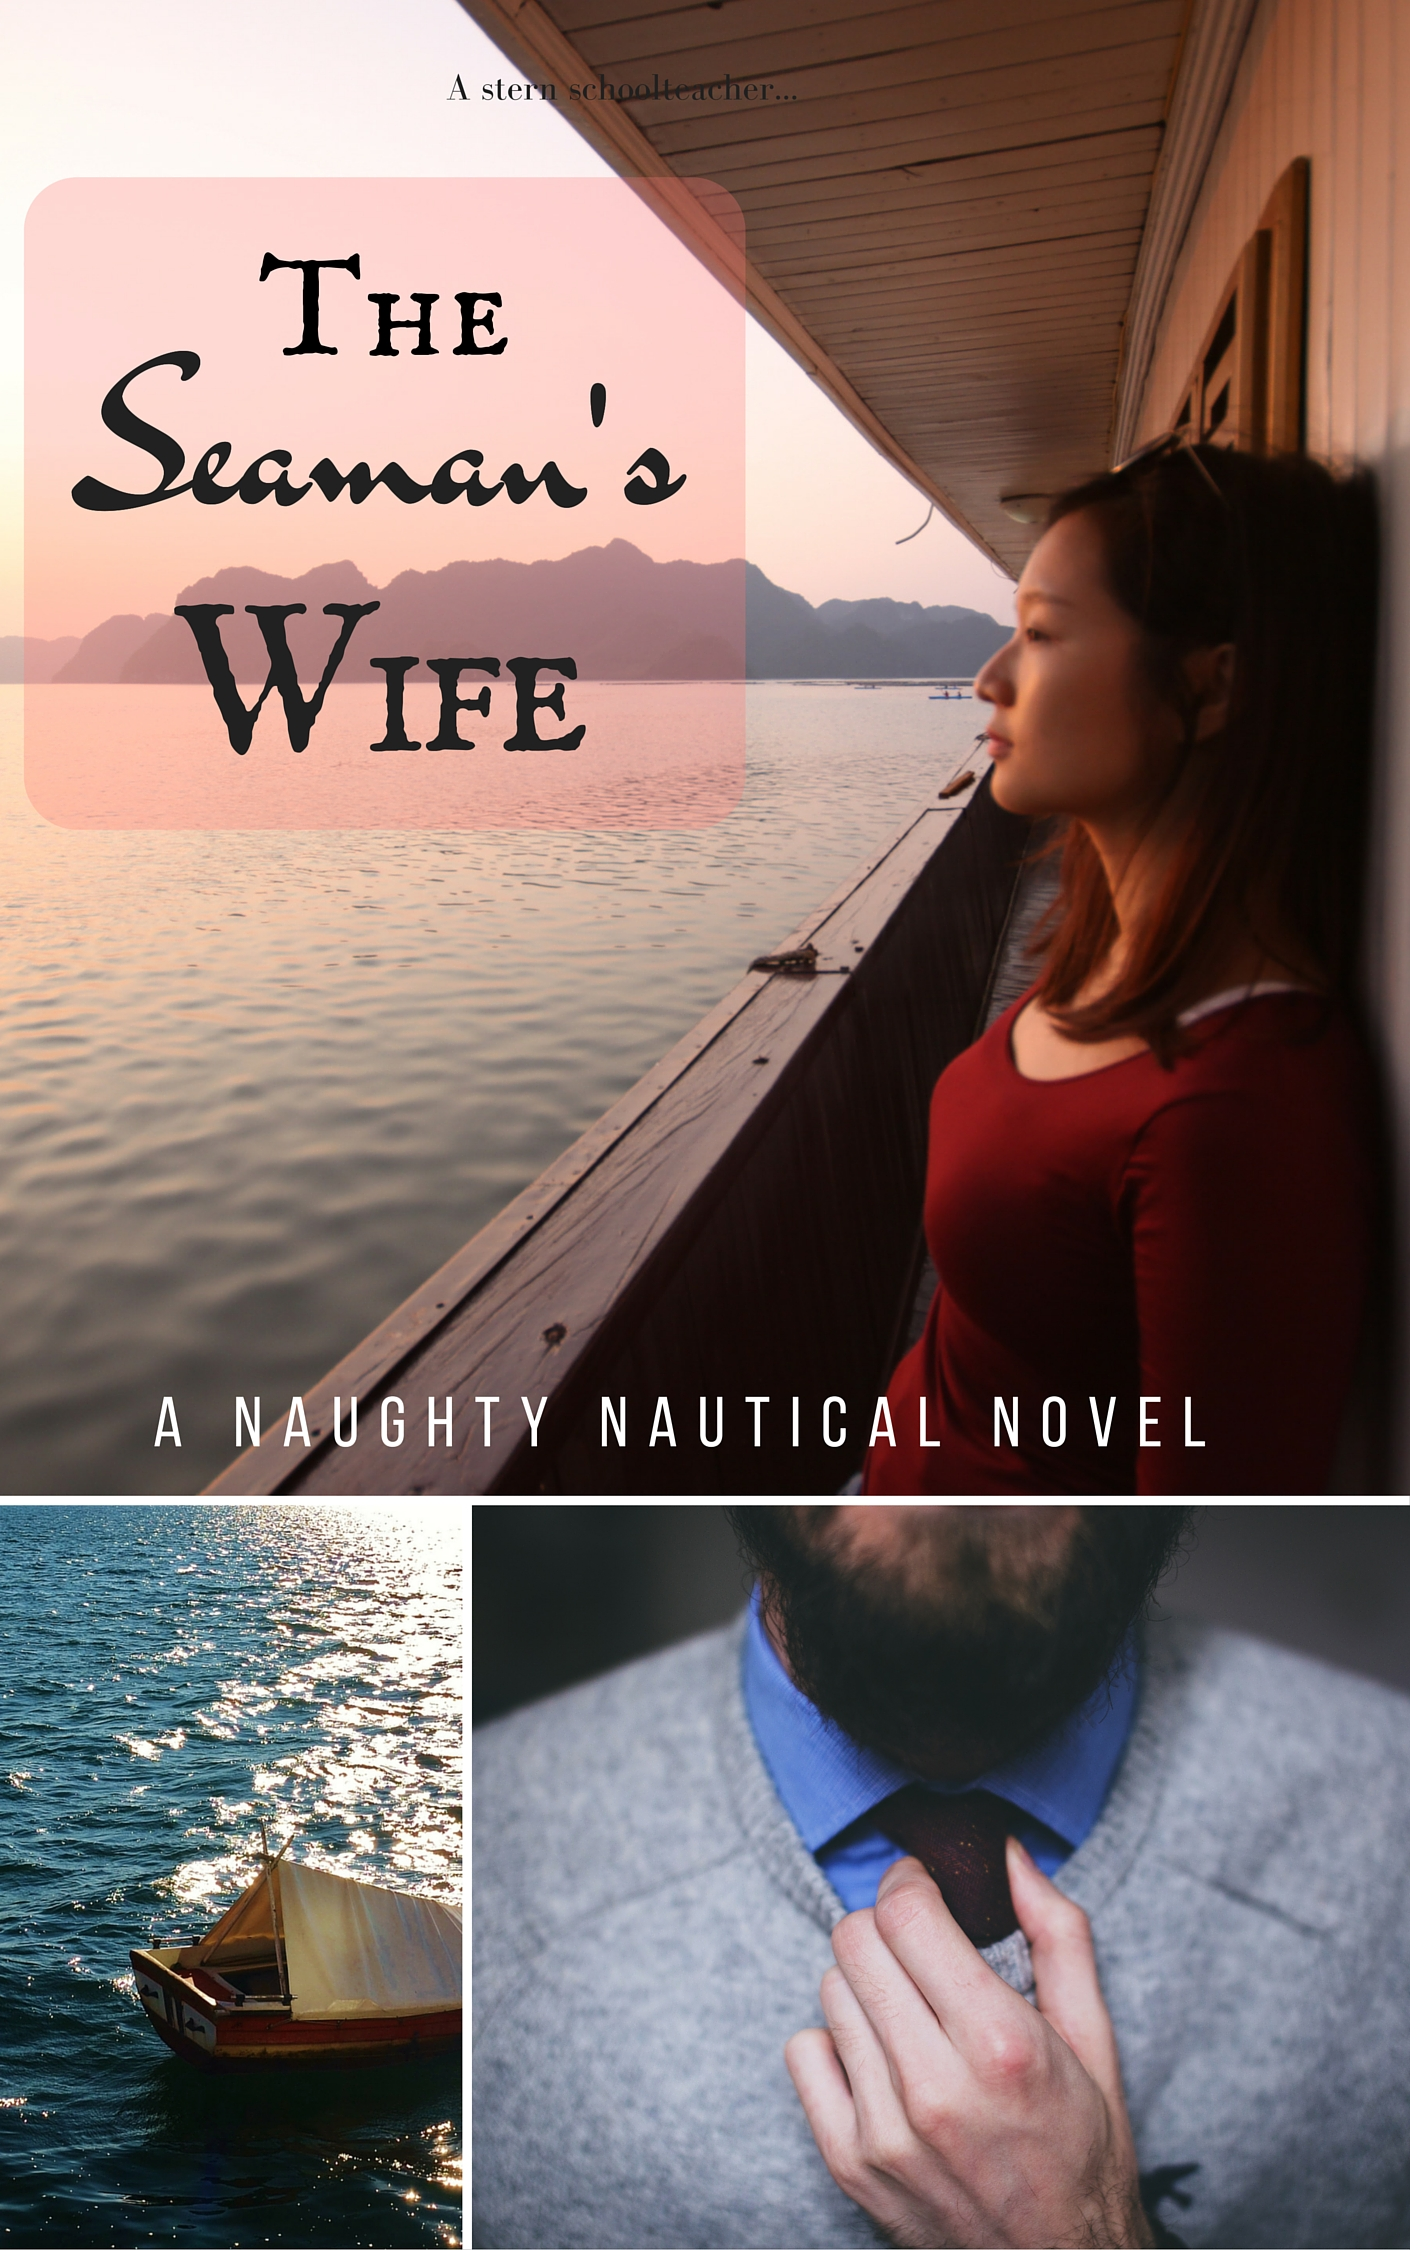 Three images. One: a woman with dark hair in a red sweater stands on a boat deck, looking out across the water. Two: smaller underneath, a small boat with a linen tarp. Three: smaller underneath, a bearded gentleman adjusts the tie beneath his crewneck sweater. Title text: The Seaman's Wife, a Naughty Nautical Novel.